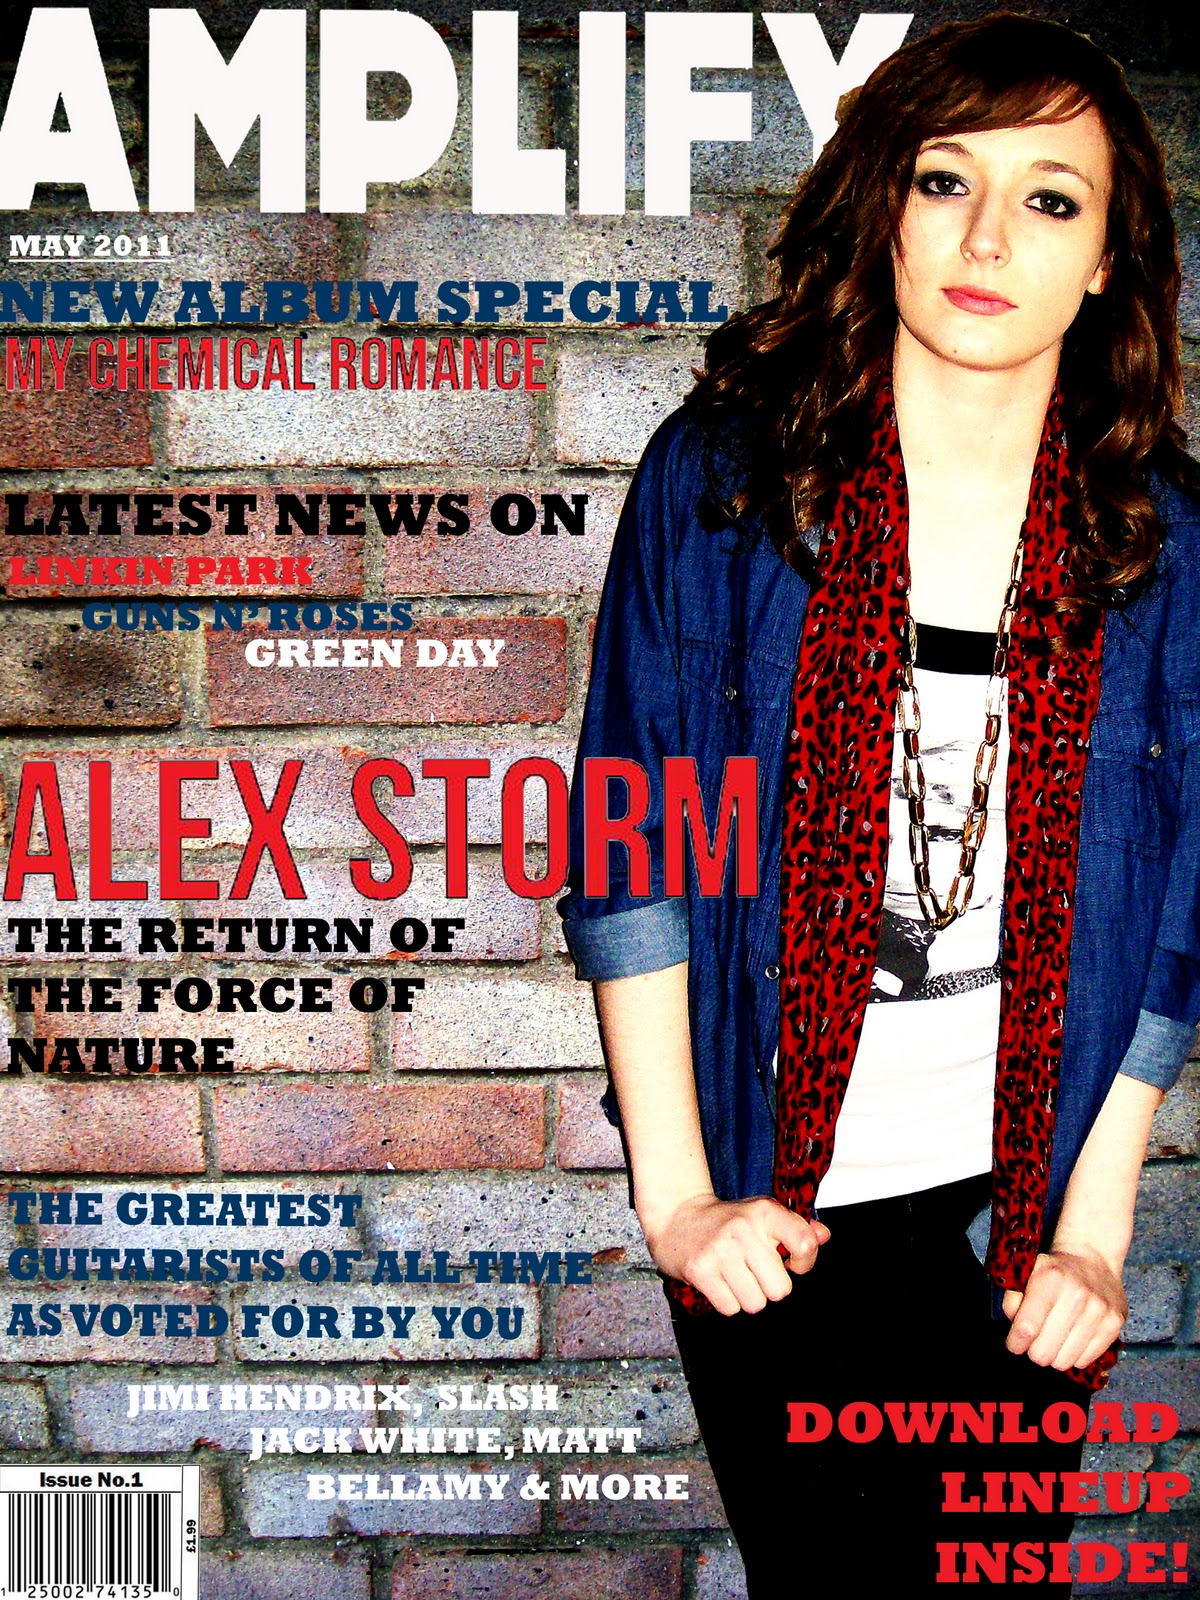 media studies coursework magazine Design your own brief the genre in which i picked for my music magazine is hip hop and under that category i chose rap orientated music magazine my main target audience would be mainly youths who range from the age of 15-29.